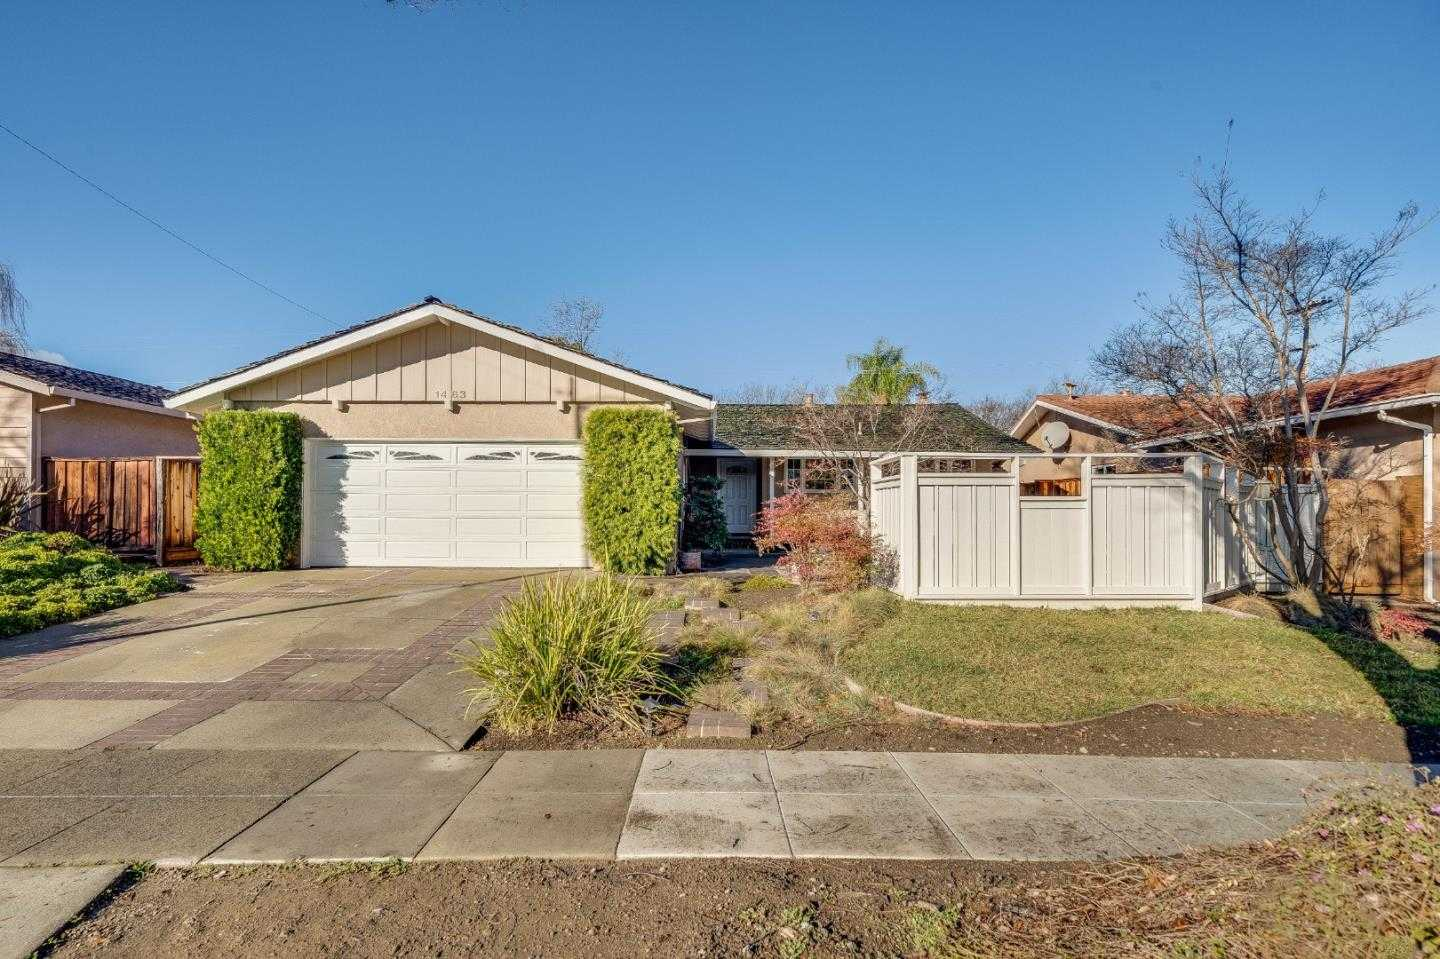 $1,800,000 - 4Br/2Ba -  for Sale in San Jose